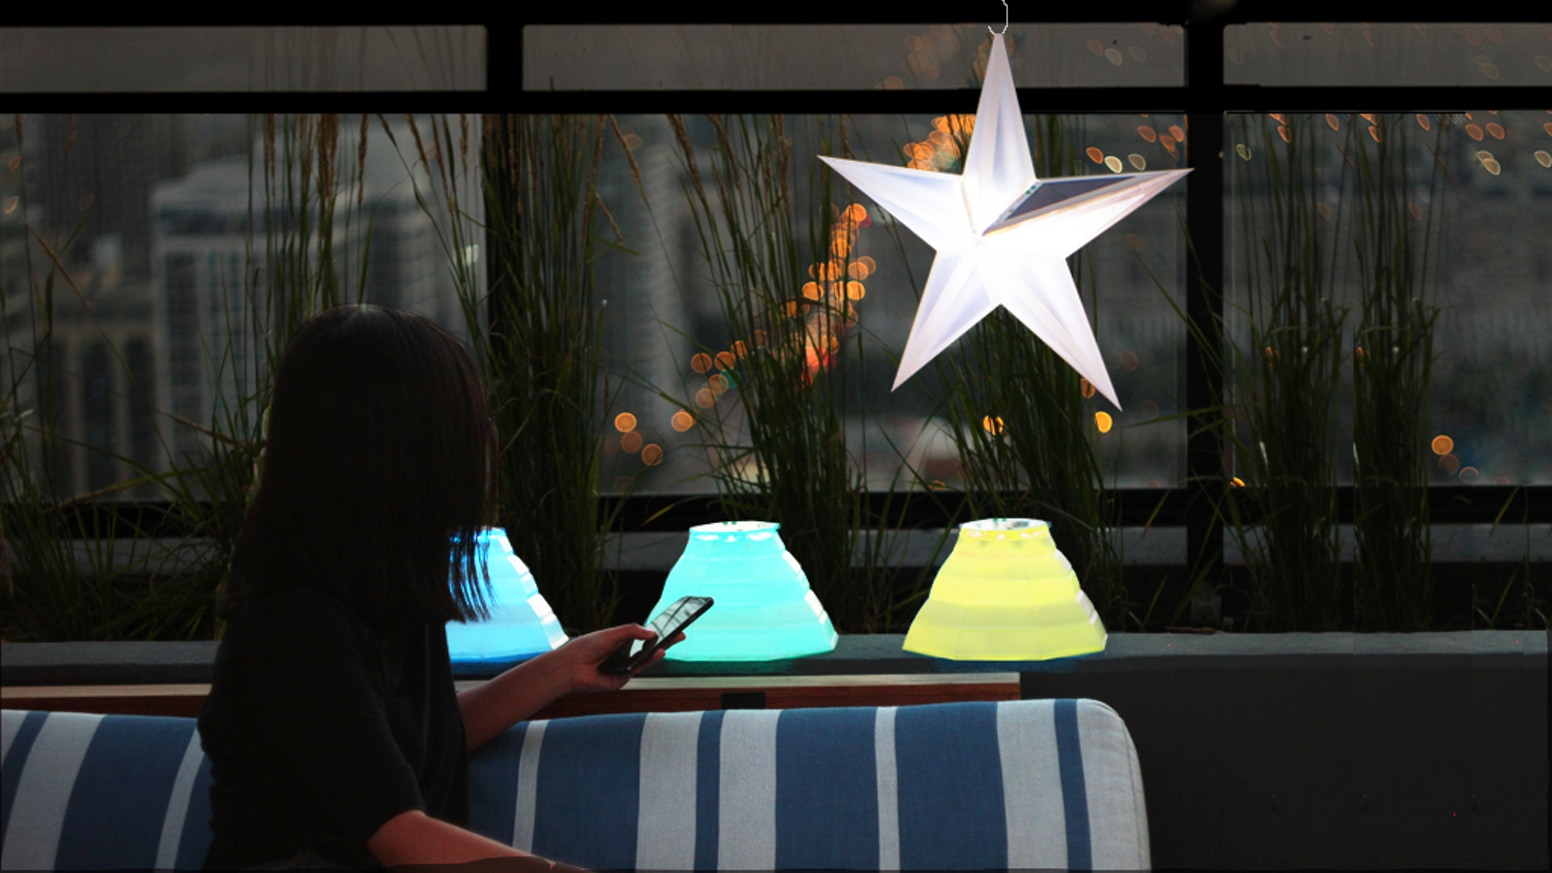 Transformable, origami-inspired, solar-powered lanterns for outdoor use. Control by Bluetooth to customize your garden illumination.